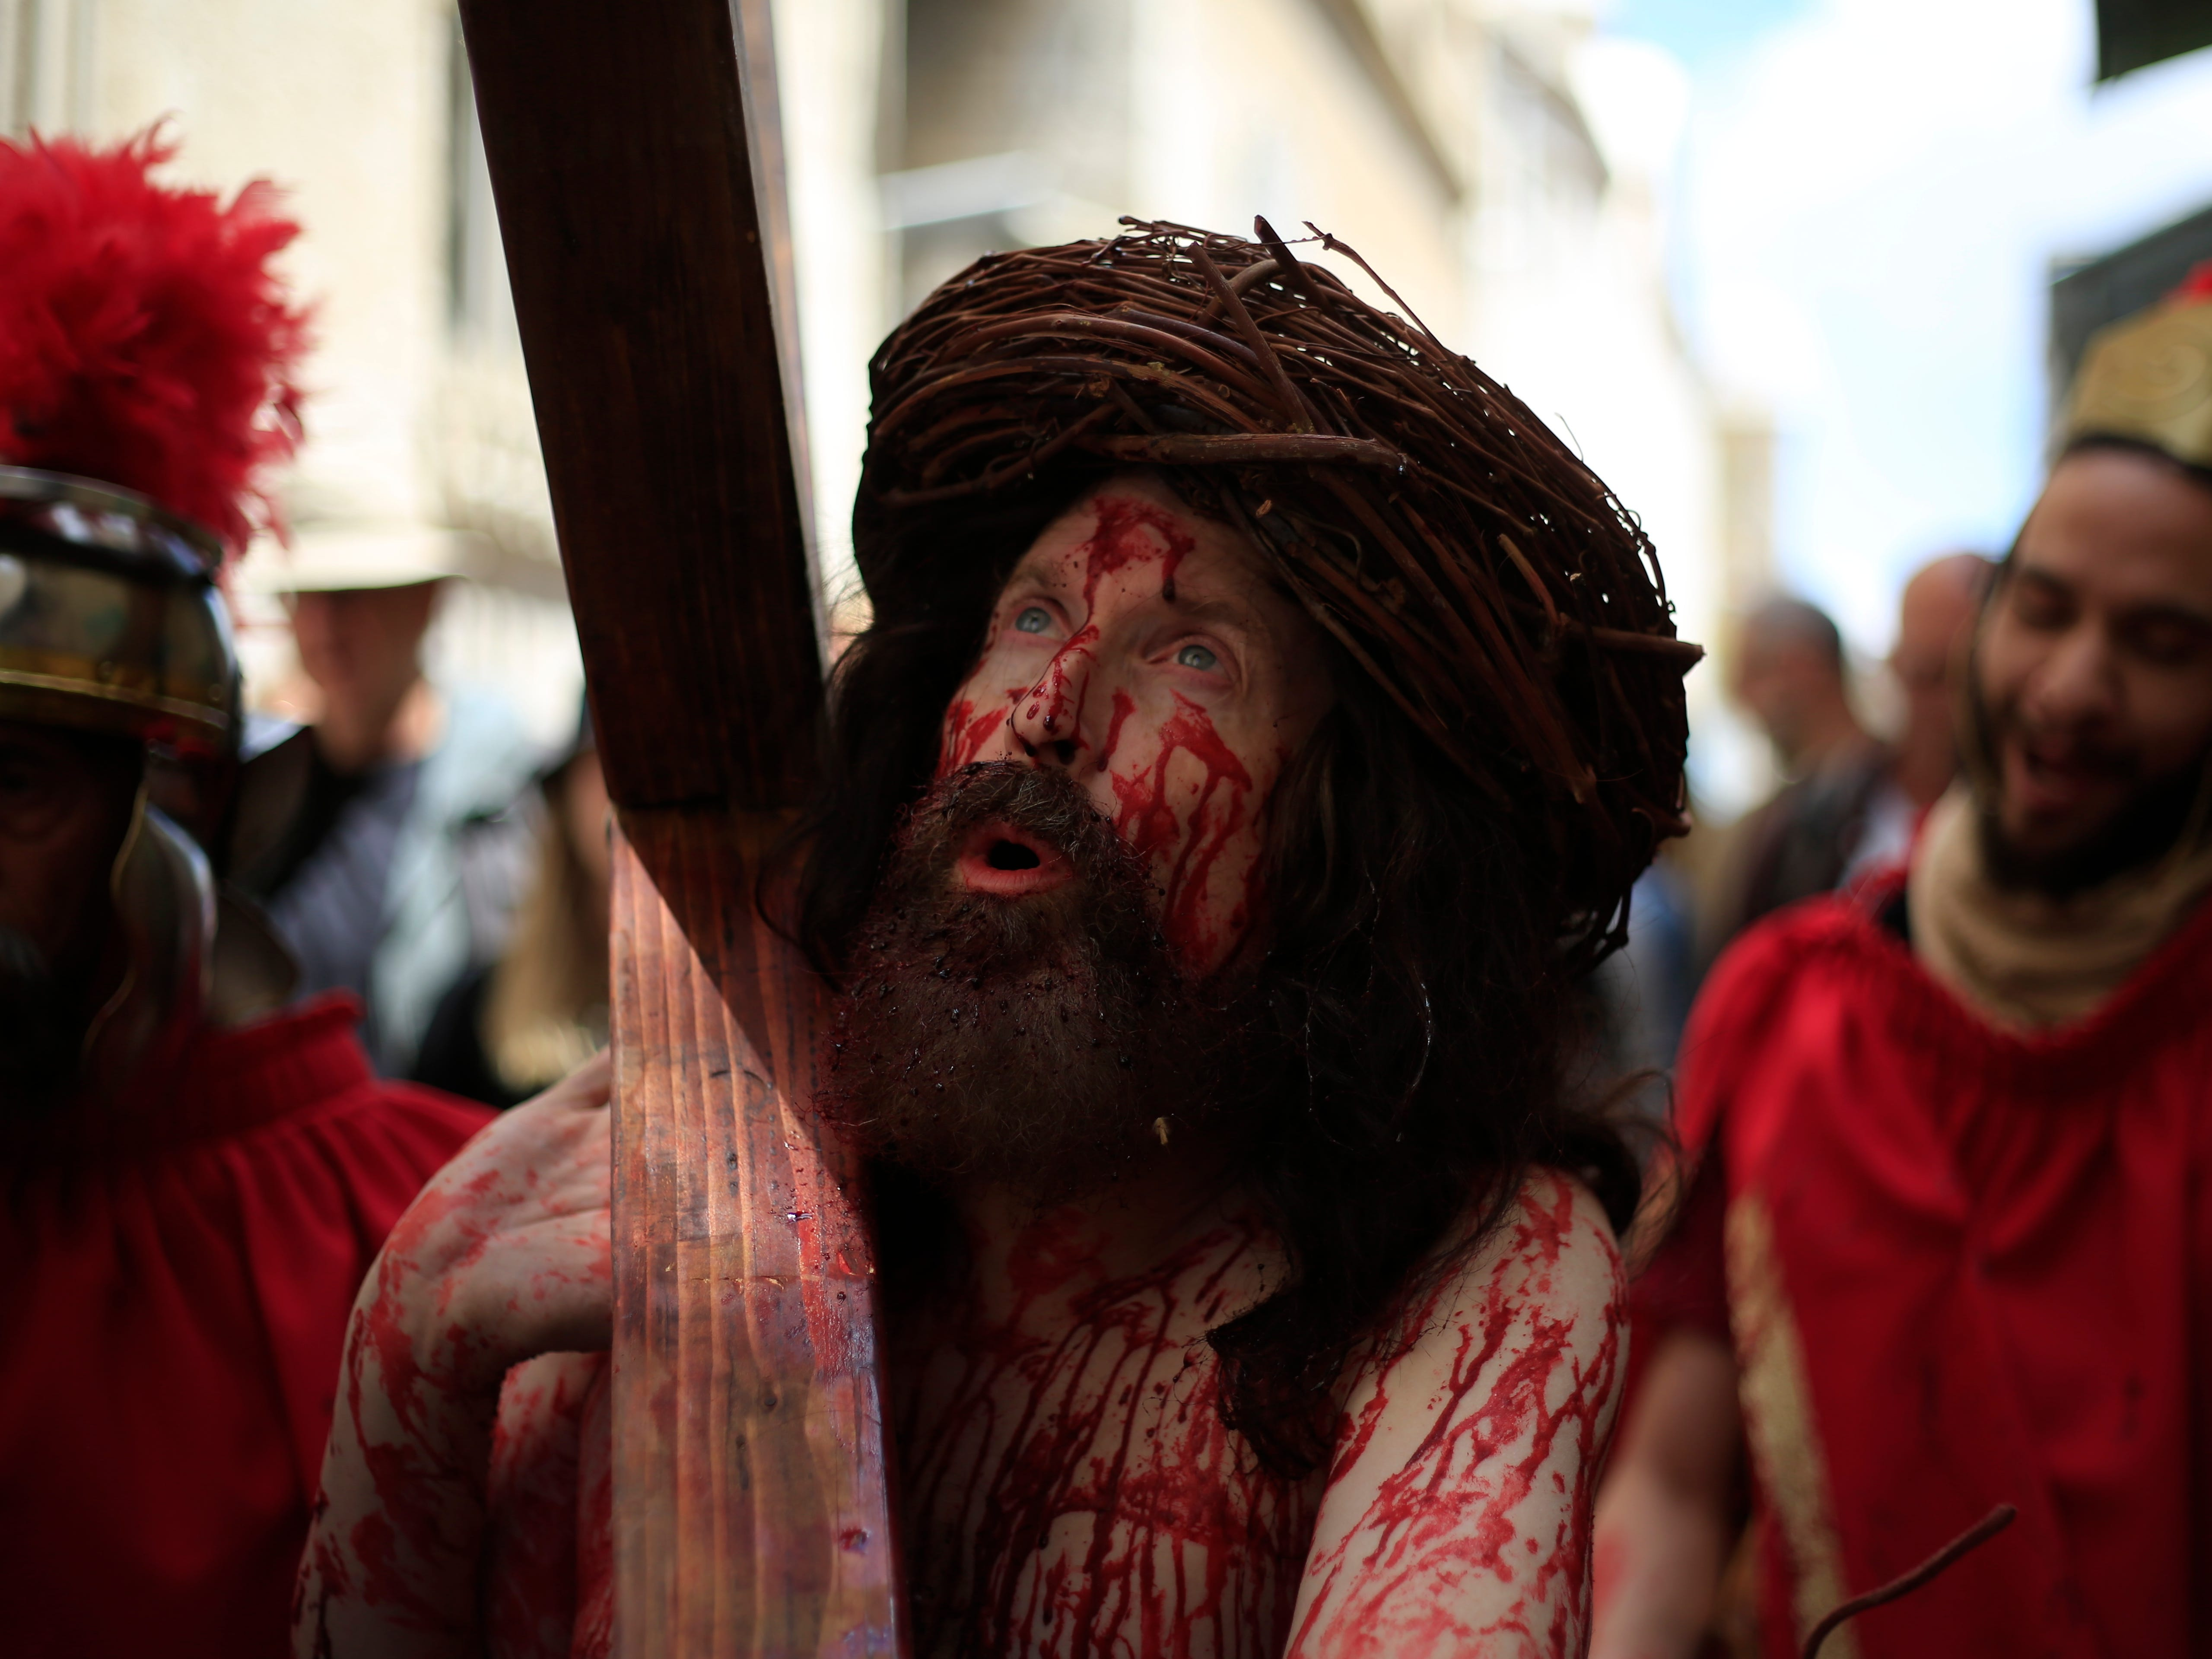 An actor dressed as Jesus Christ carries a cross as he reenacts the crucifixion walk along the Via Dolorosa towards the Church of the Holy Sepulchre, traditionally believed by many to be the site of the crucifixion of Jesus Christ, during the Good Friday procession in Jerusalem's old city, Friday, April 19, 2019.